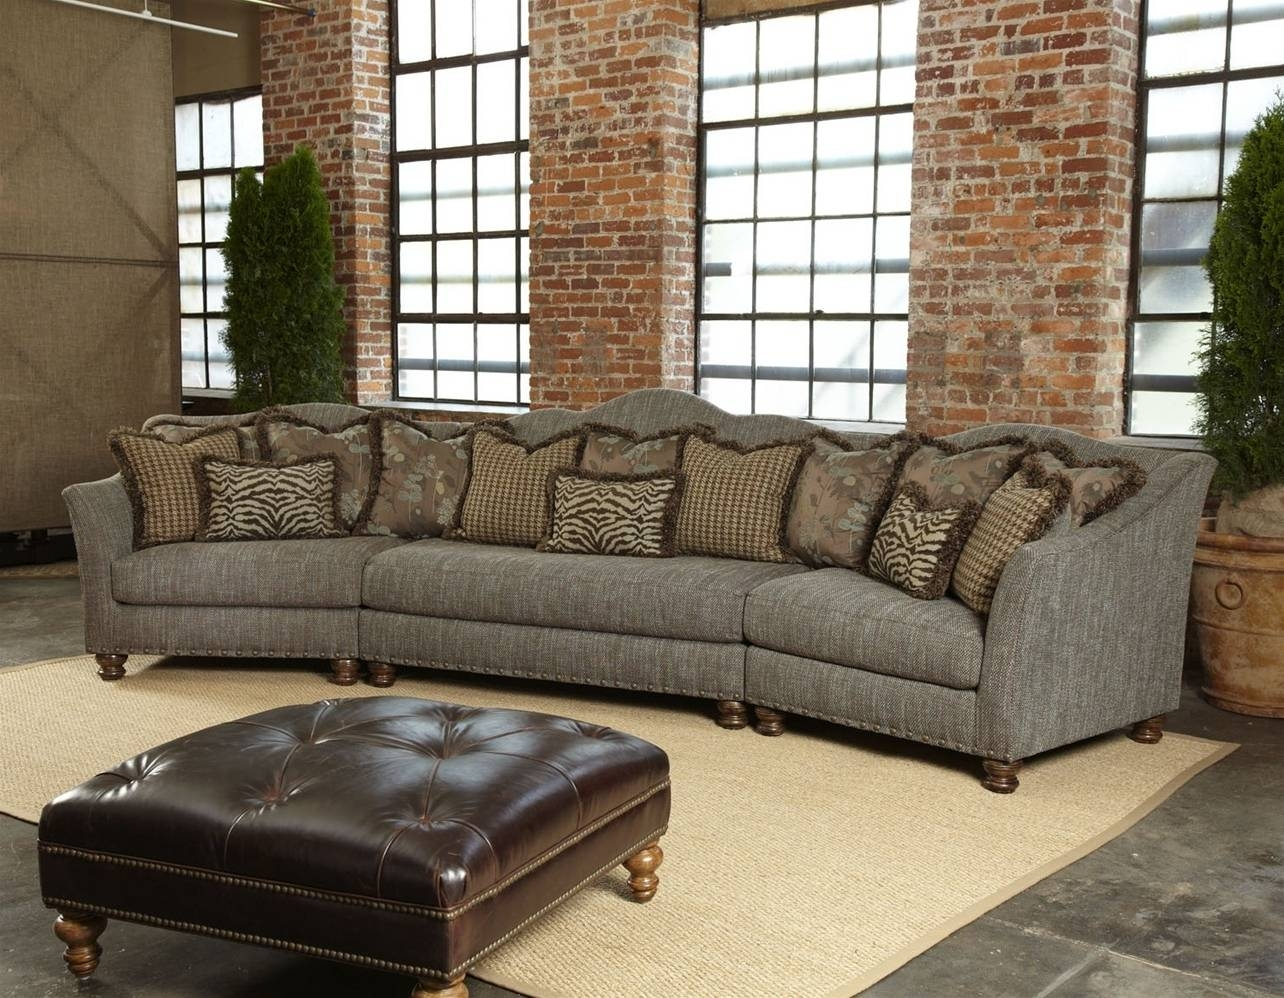 Best Best Quality Sectional Sofas 18 In Eco Friendly Sectional within Eco Friendly Sectional Sofa (Image 13 of 30)